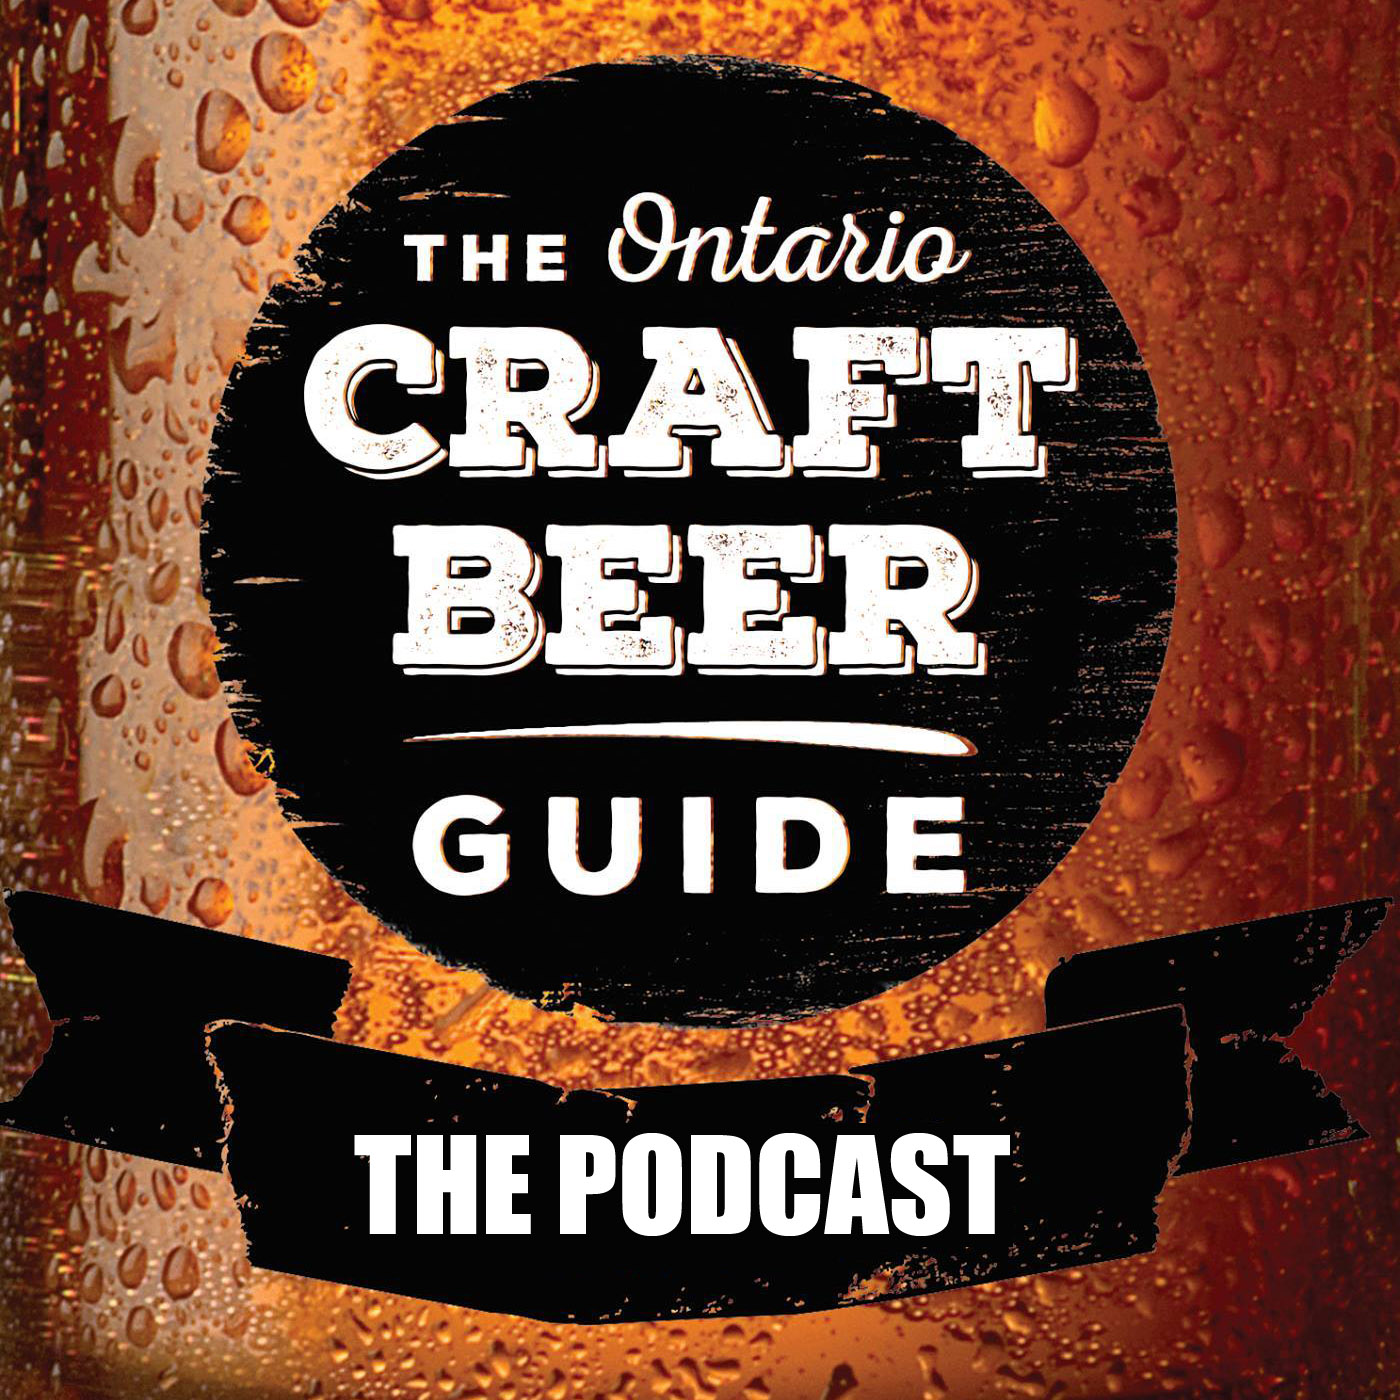 The Ontario Craft Beer Guide The Podcast